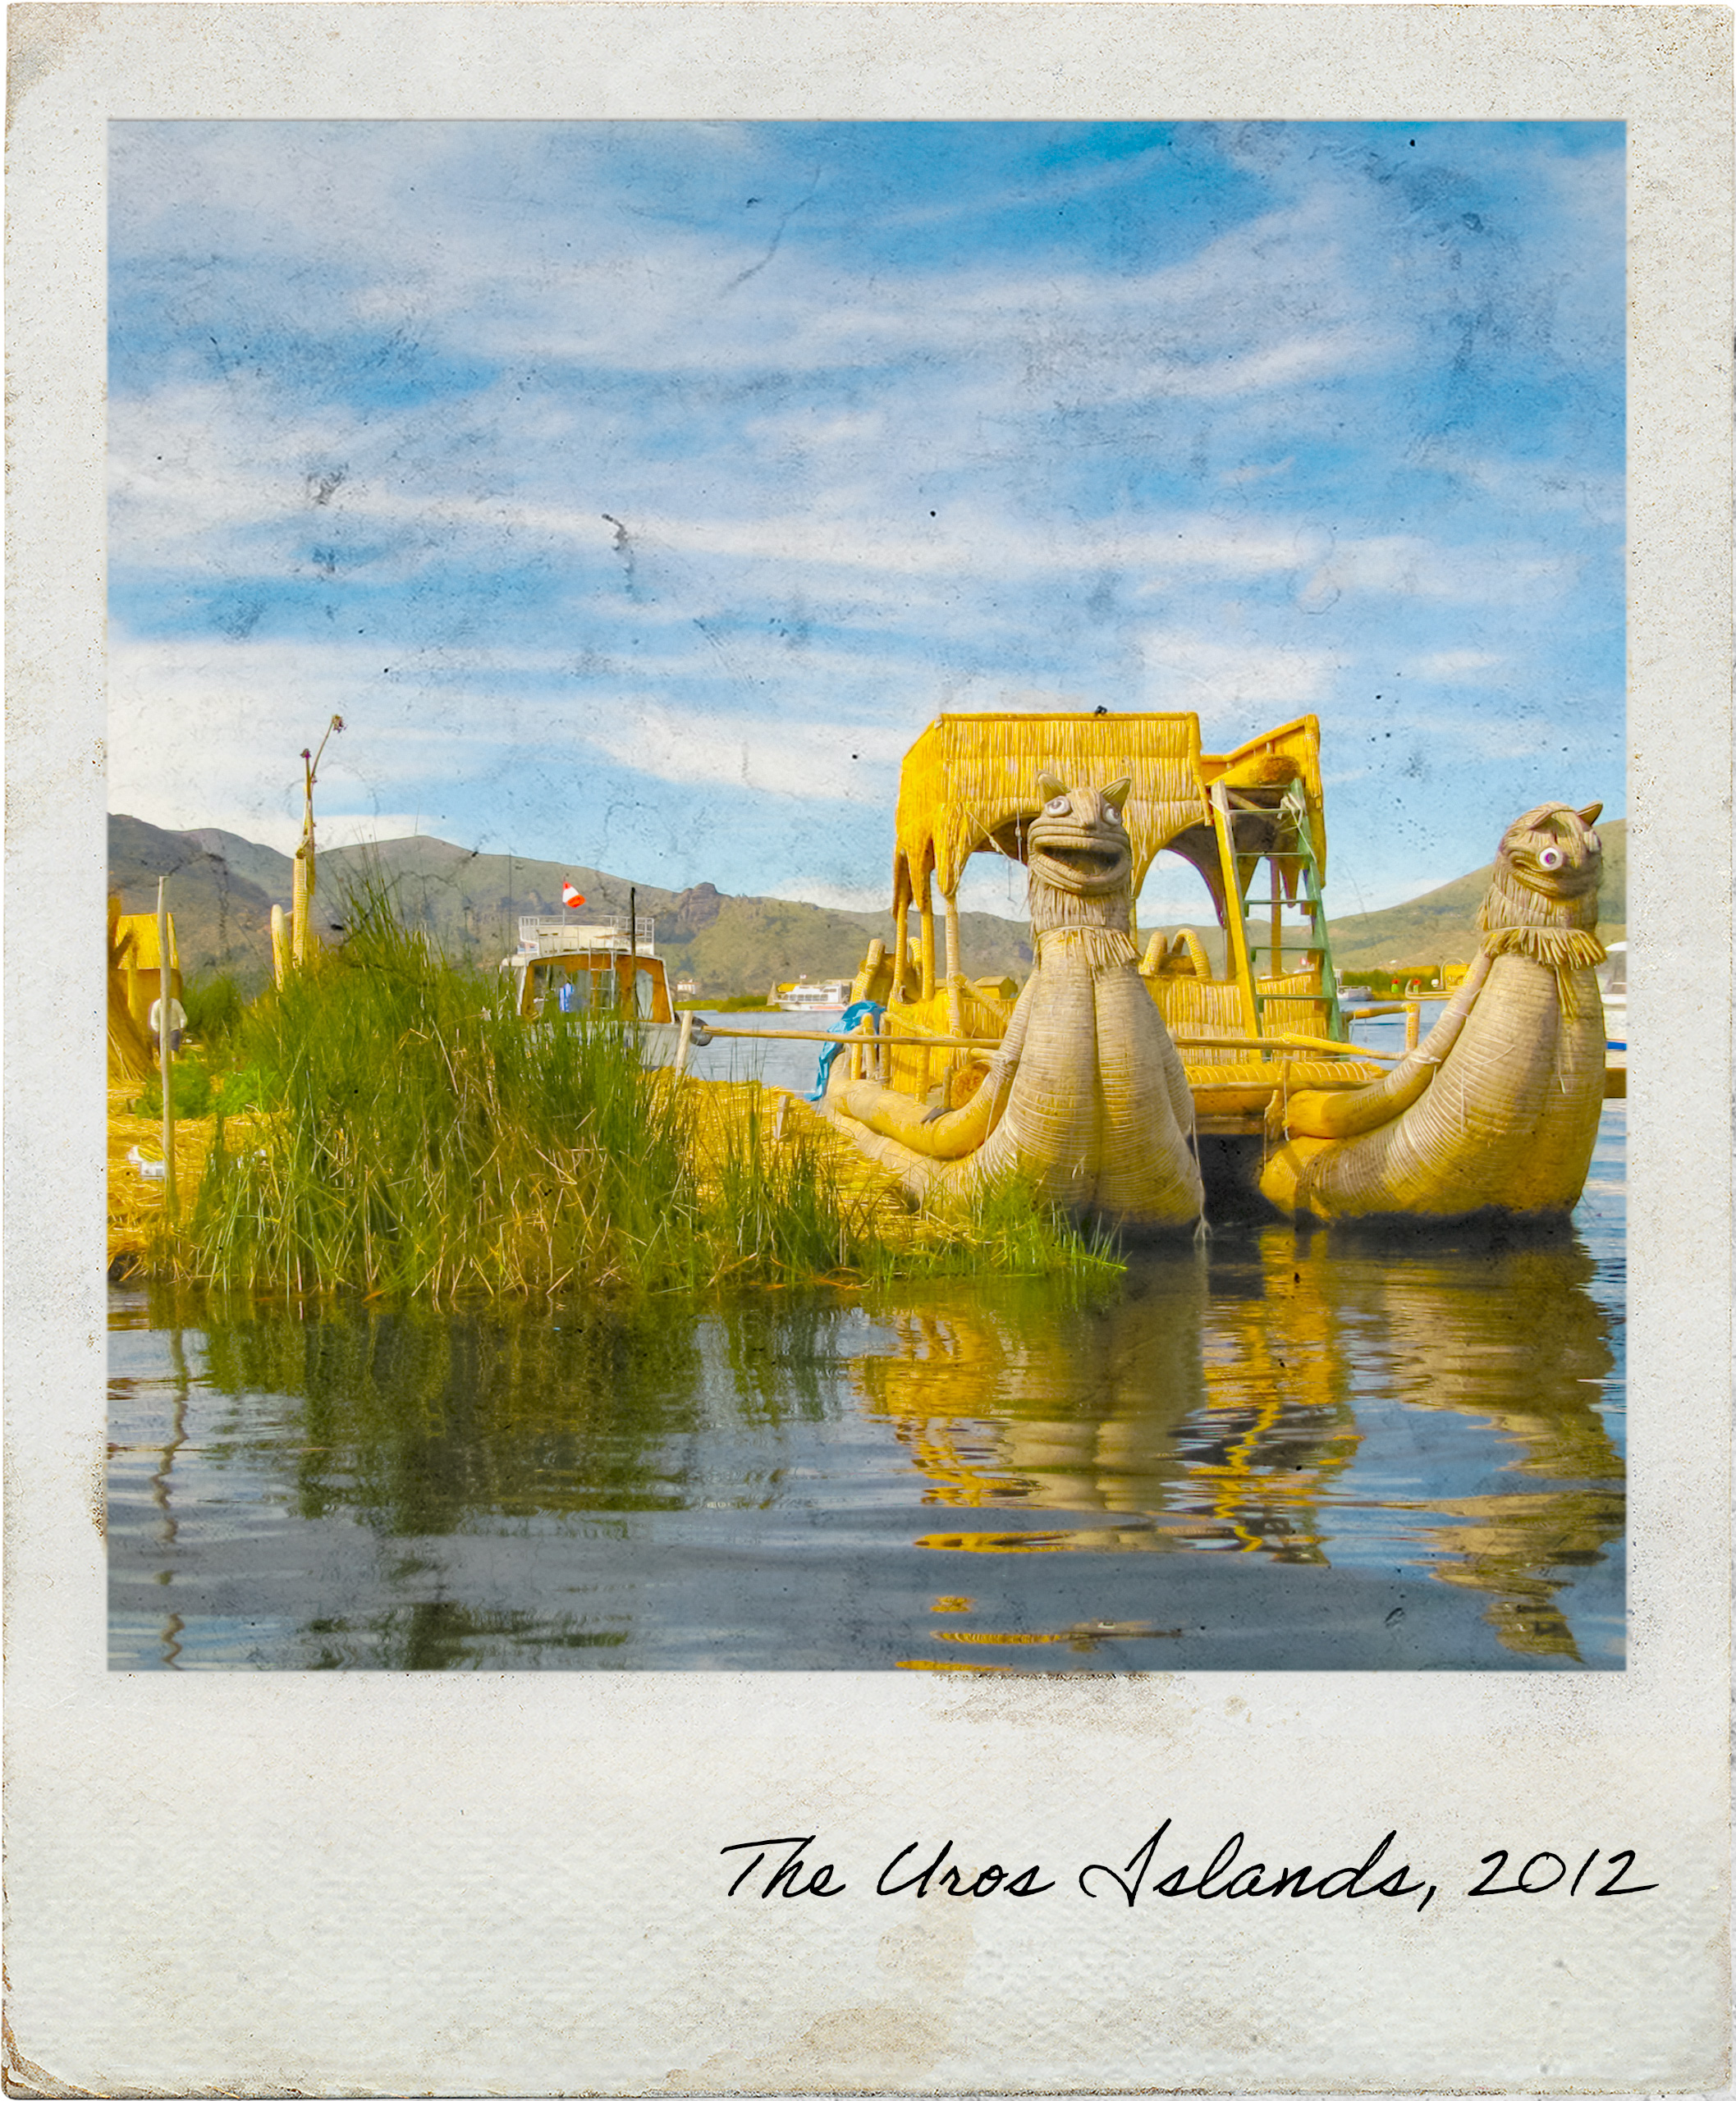 Reeds boat in the Uros Islands